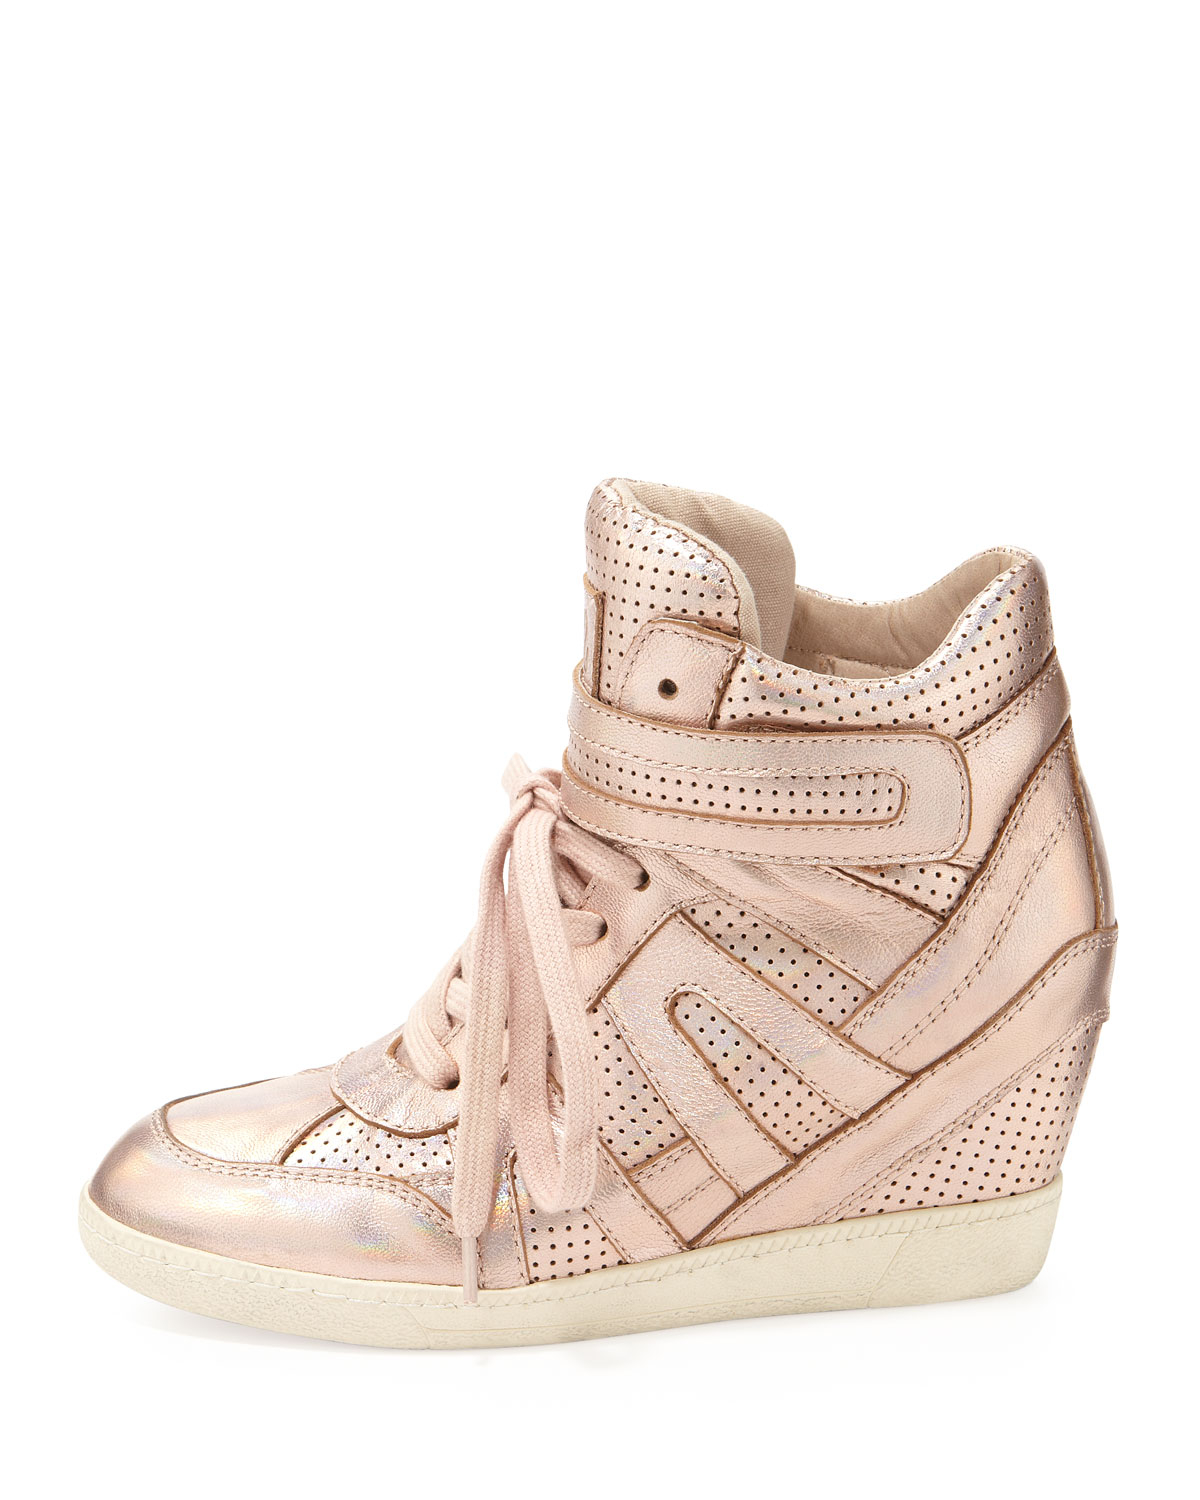 Nike Rose Gold Wedge Sneakers f350011144